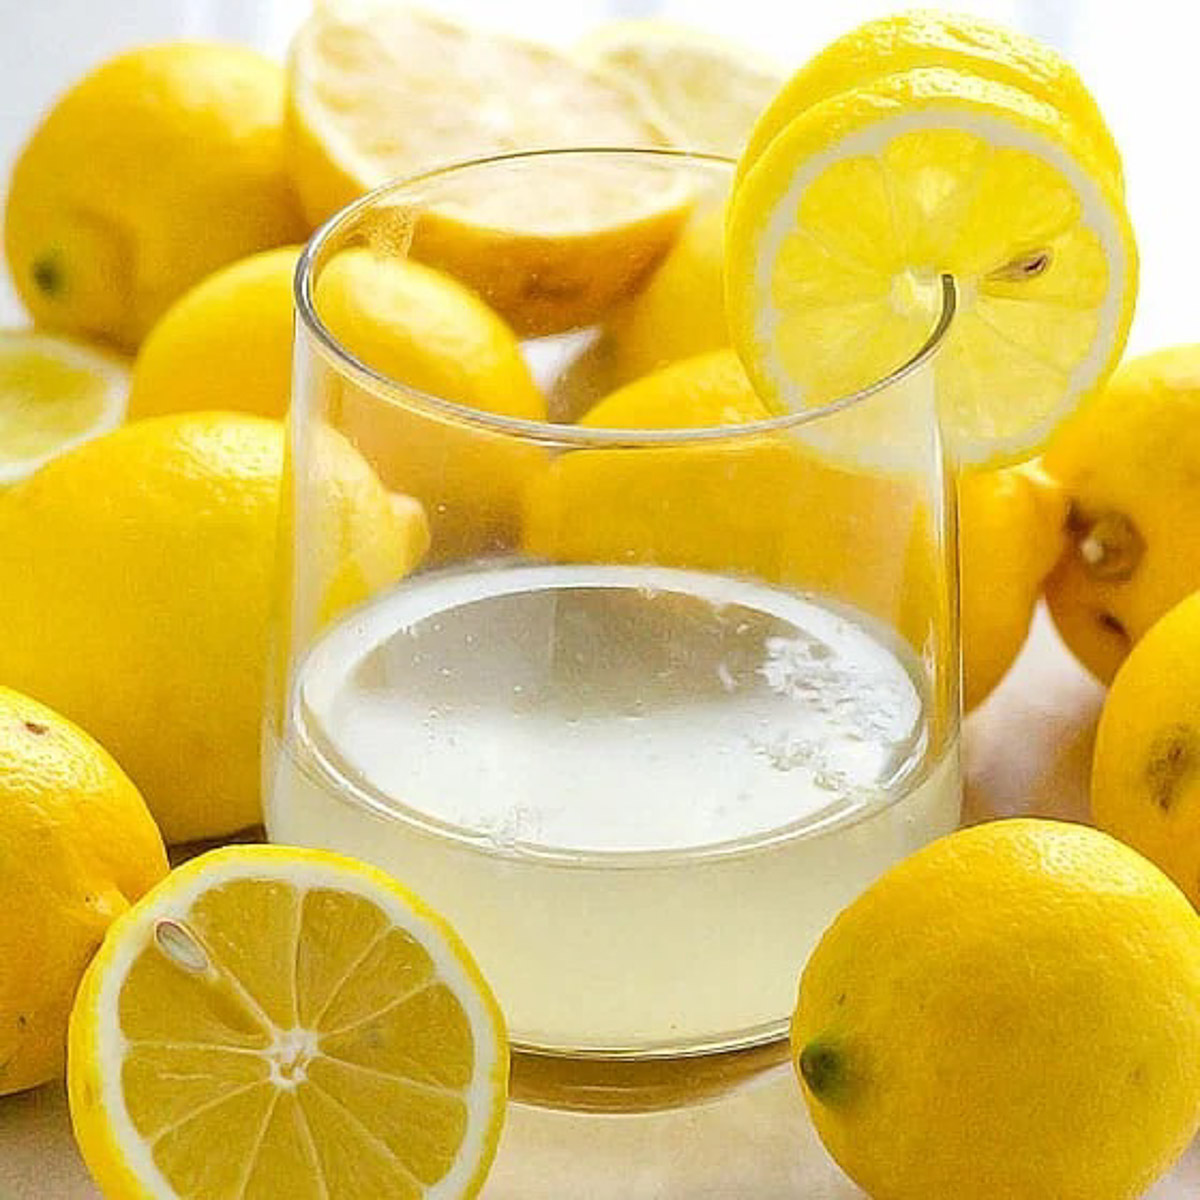 Does Warm Lemon Water Play a Role in Weight Loss?